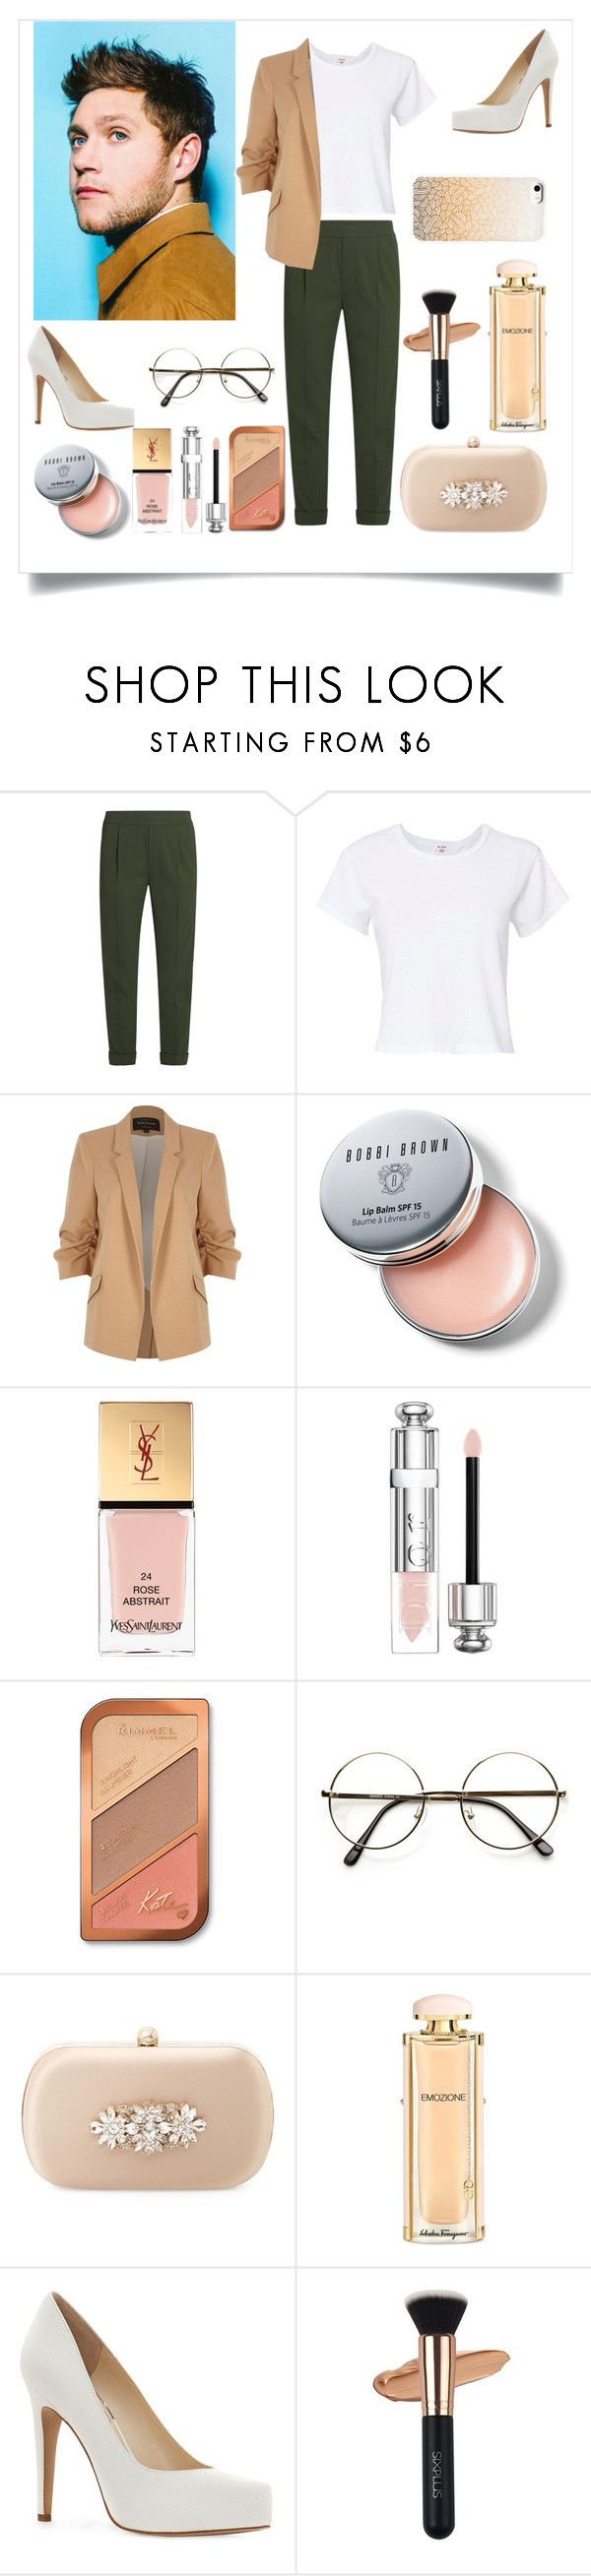 """Con Niall Horan en sesión de fotos"" by andyramos-1 ❤ liked on Polyvore featuring Vince, RE/DONE, River Island, Bobbi Brown Cosmetics, Yves Saint Laurent, Christian Dior, Rimmel, Badgley Mischka, Salvatore Ferragamo and Jessica Simpson"